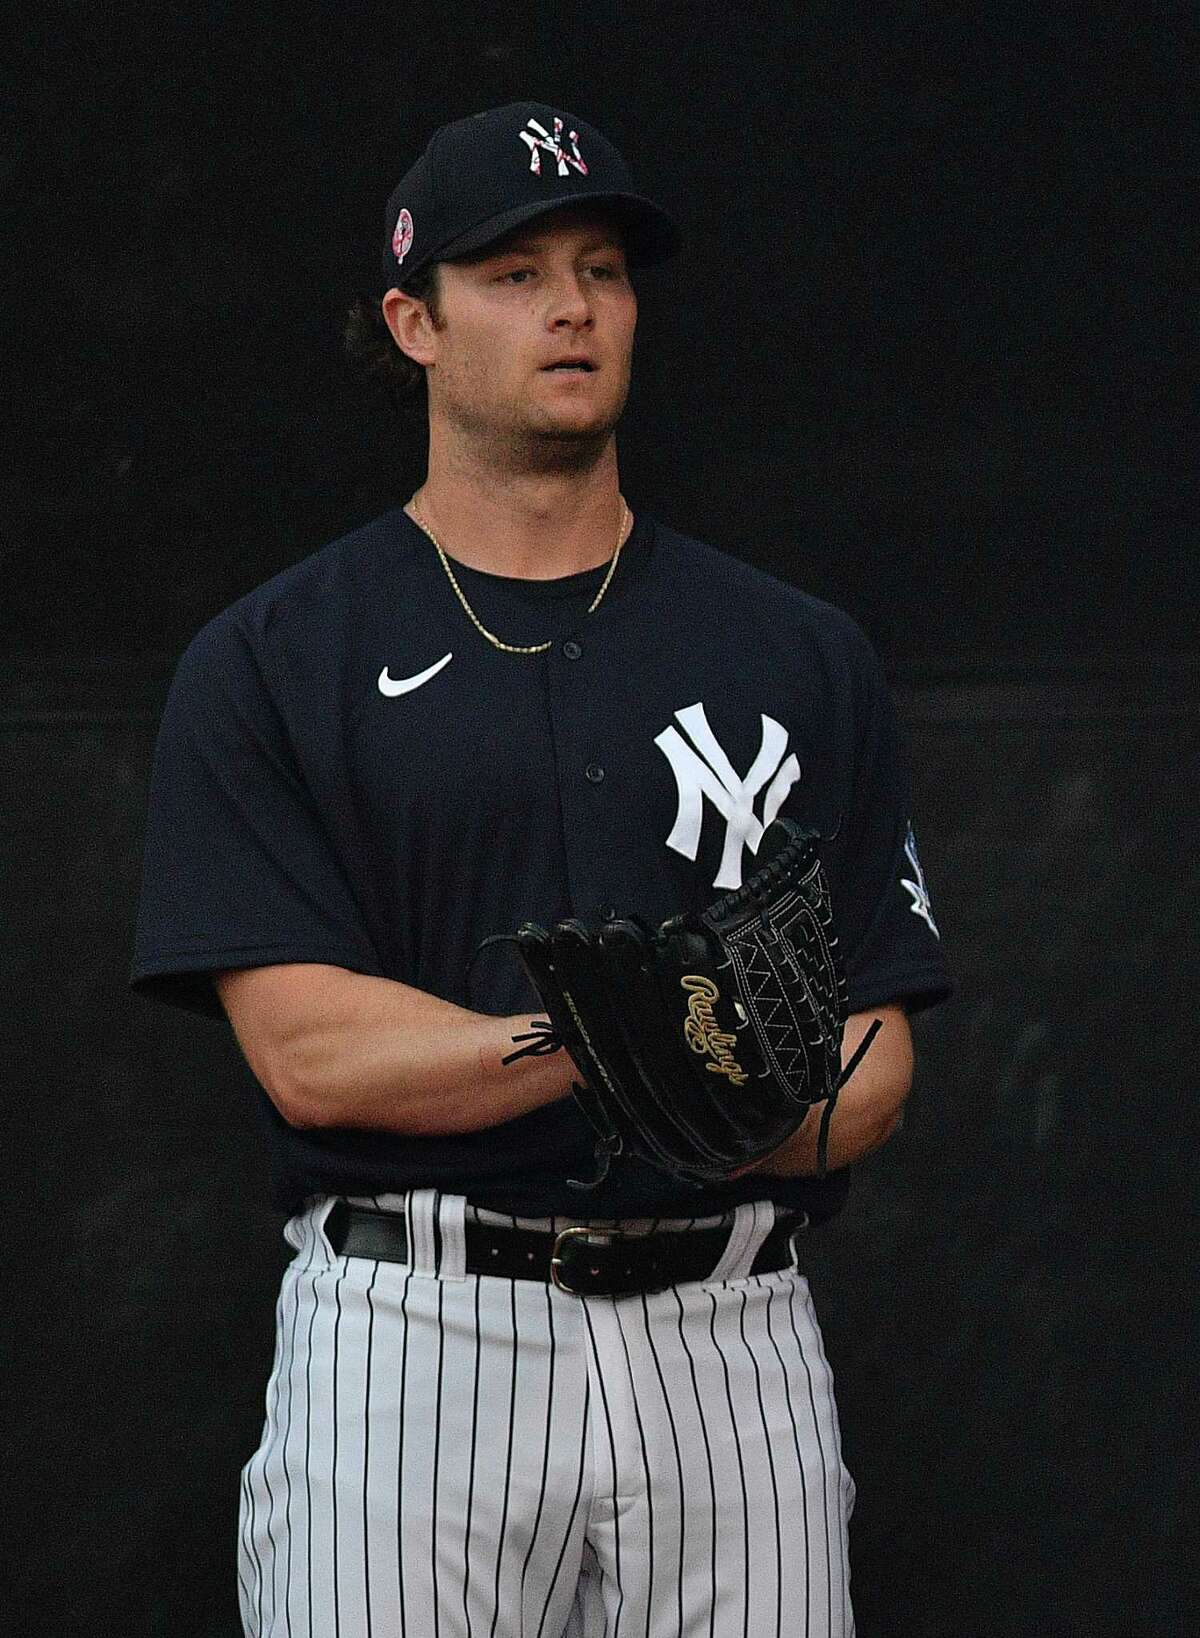 TAMPA, FLORIDA - FEBRUARY 24: Gerrit Cole #45 of the New York Yankees warms up before the spring training game against the Pittsburgh Pirates at Steinbrenner Field on February 24, 2020 in Tampa, Florida. (Photo by Mark Brown/Getty Images)